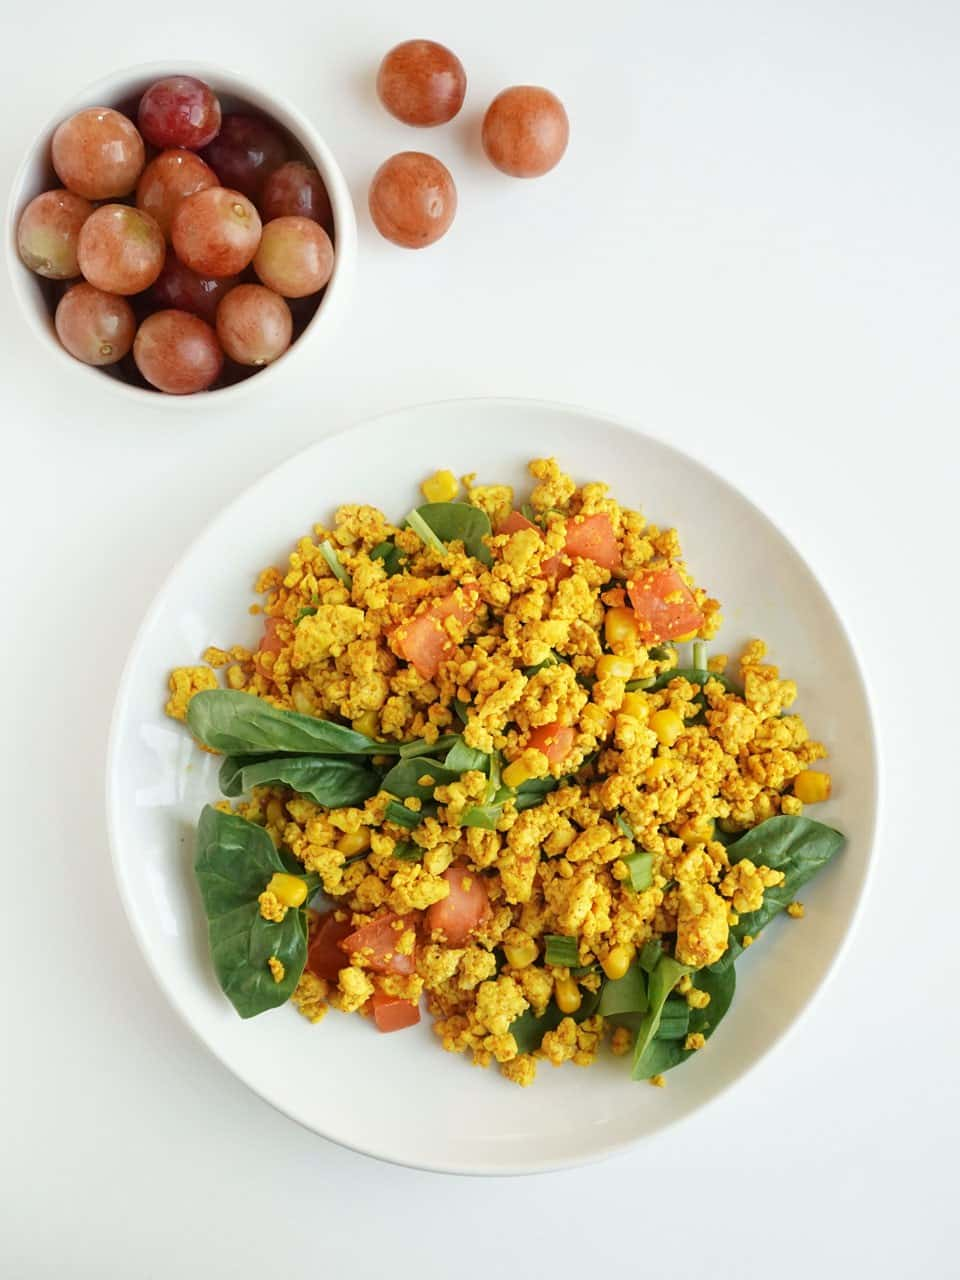 49 Savory Vegan Breakfast Recipes: Simple Vegan Tofu Scramble with Corn